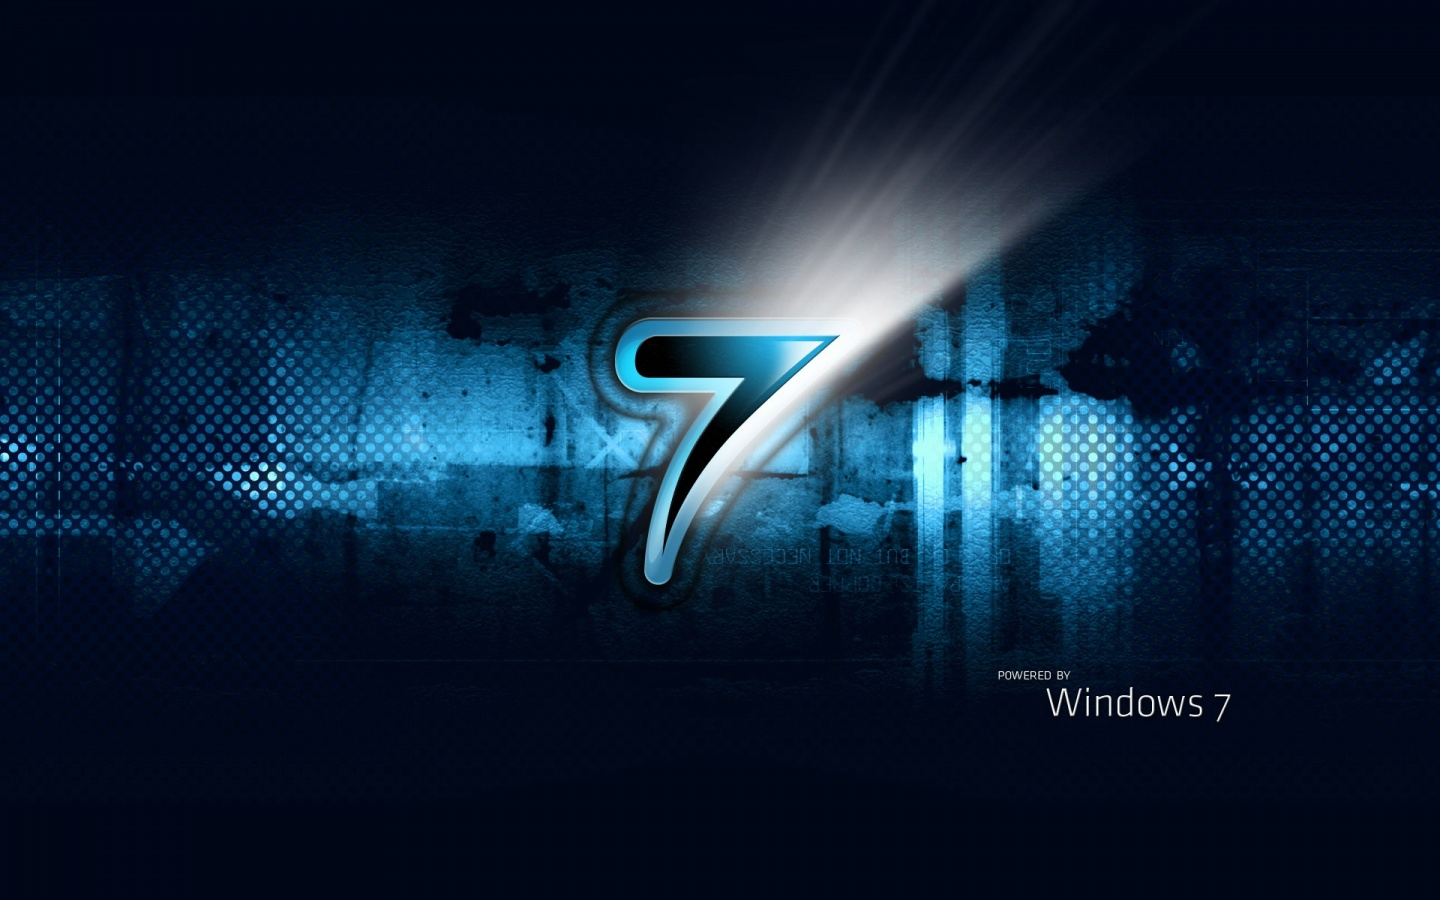 Wallpapers Videos Windows 7 Wallpapers hd Windows Wallpapers 1440x900